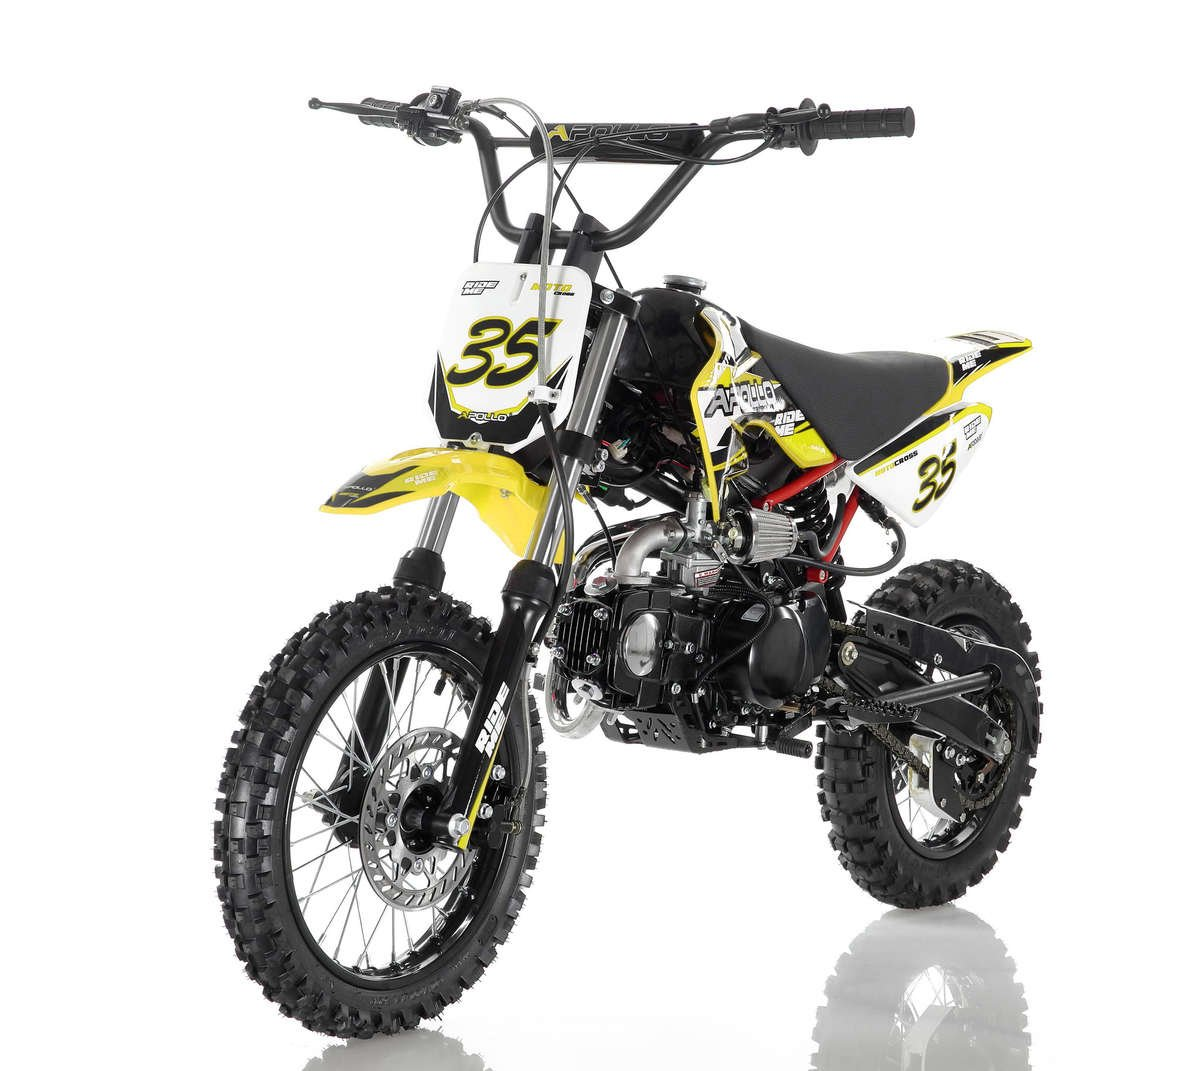 Apollo 35 Dirt Bike 125cc Yellow